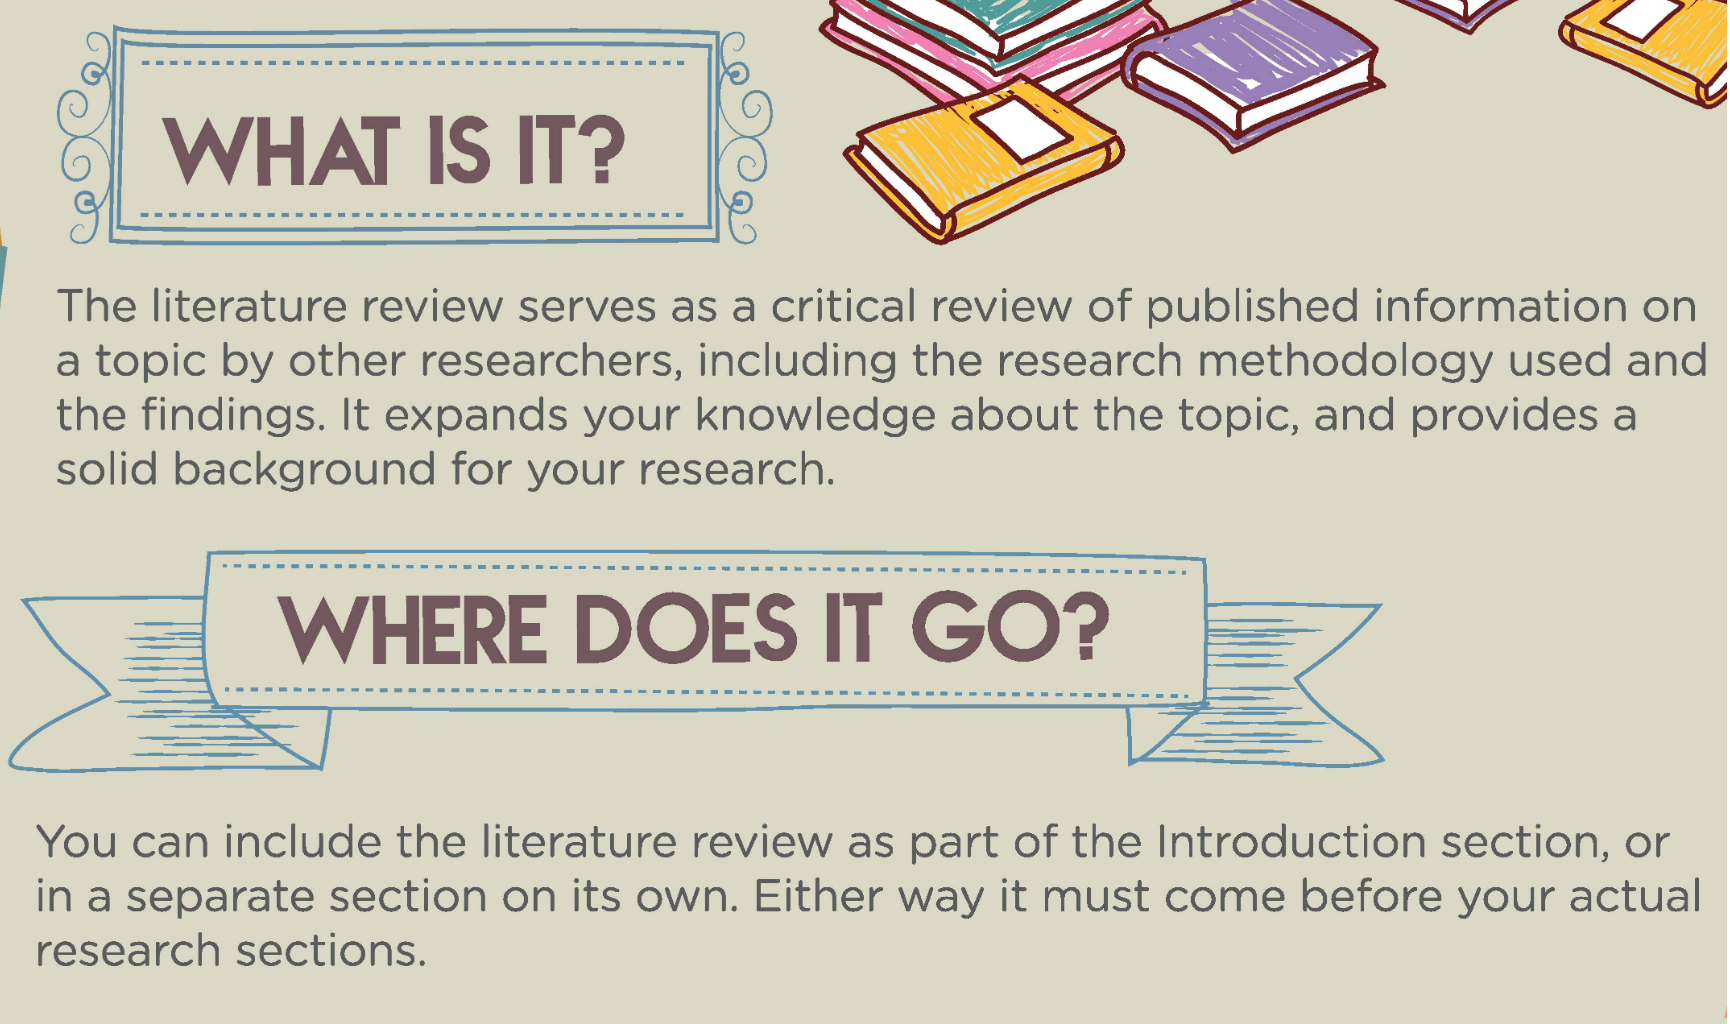 how to write a review of literature The royal literary fund (nd) the structure of a literature review in literature reviews retrieved from: literaturereviews/structurecfm write a literature review university library, university of california santa cruz (nd) how to write a literature review.